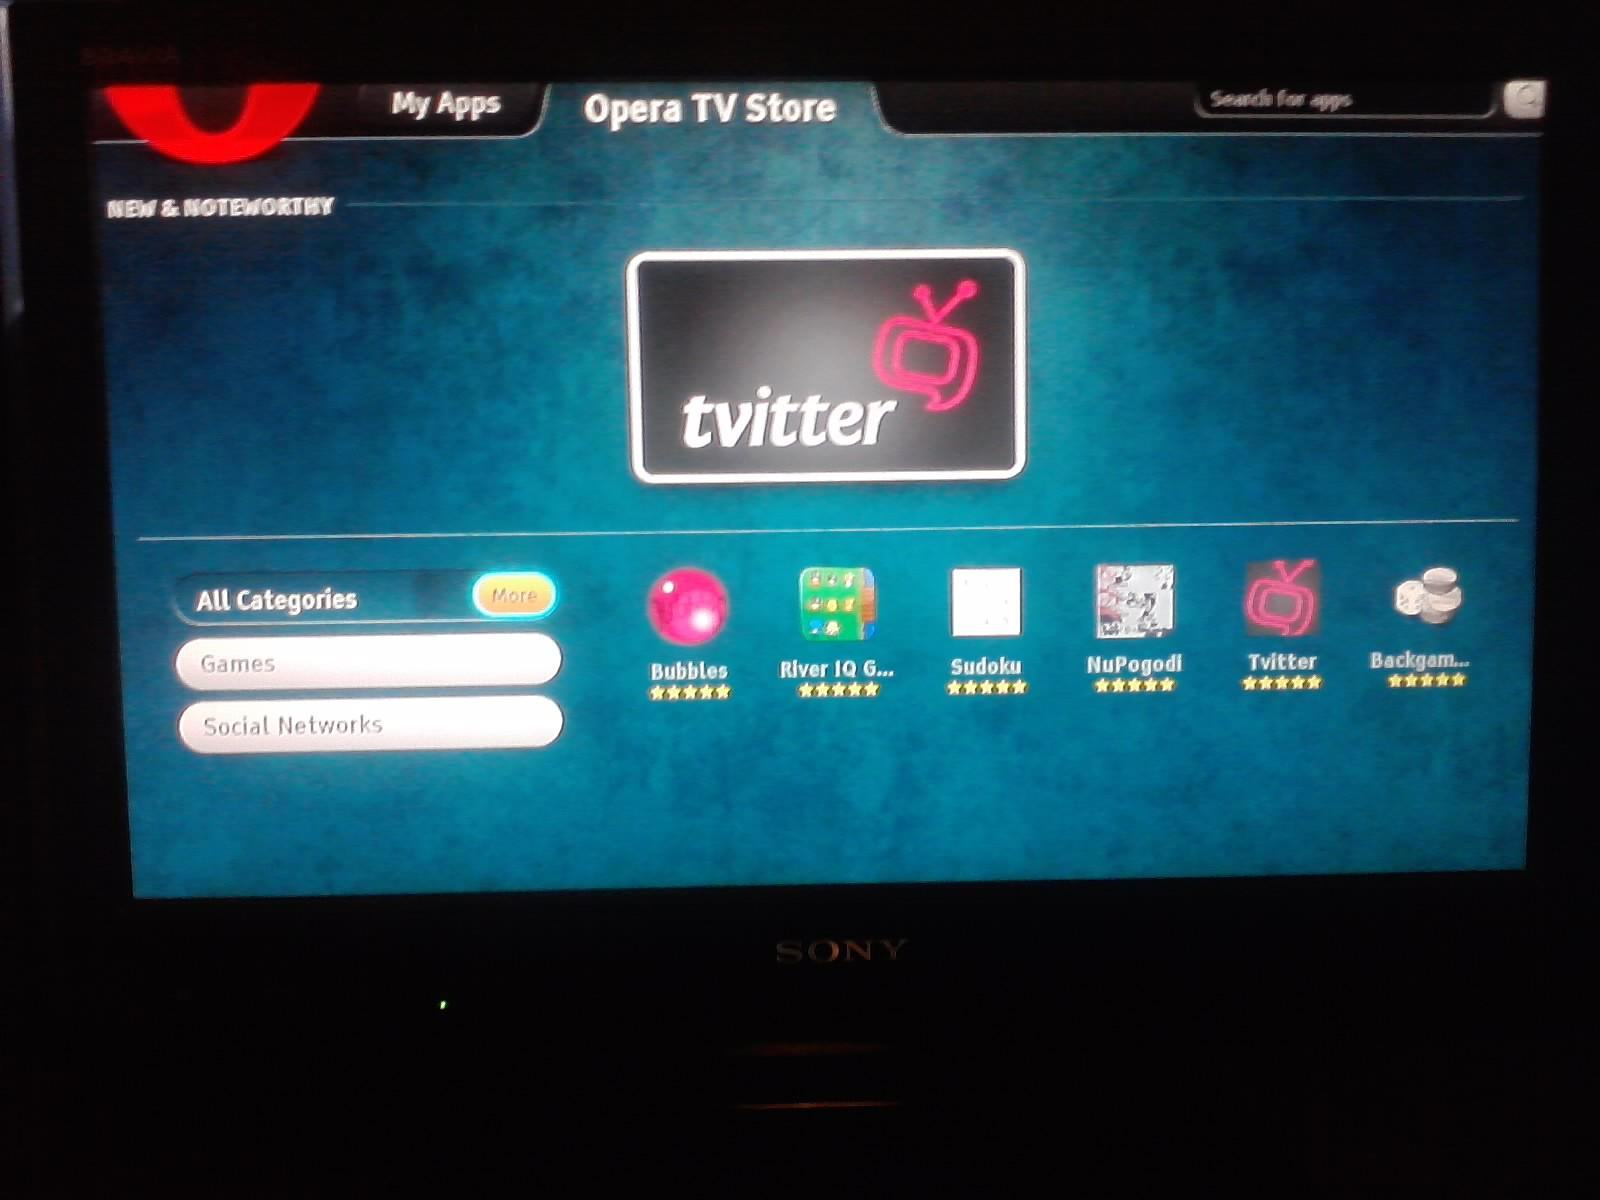 BRAVIA Internet Video : Smart TV from Sony: Opera TV Store